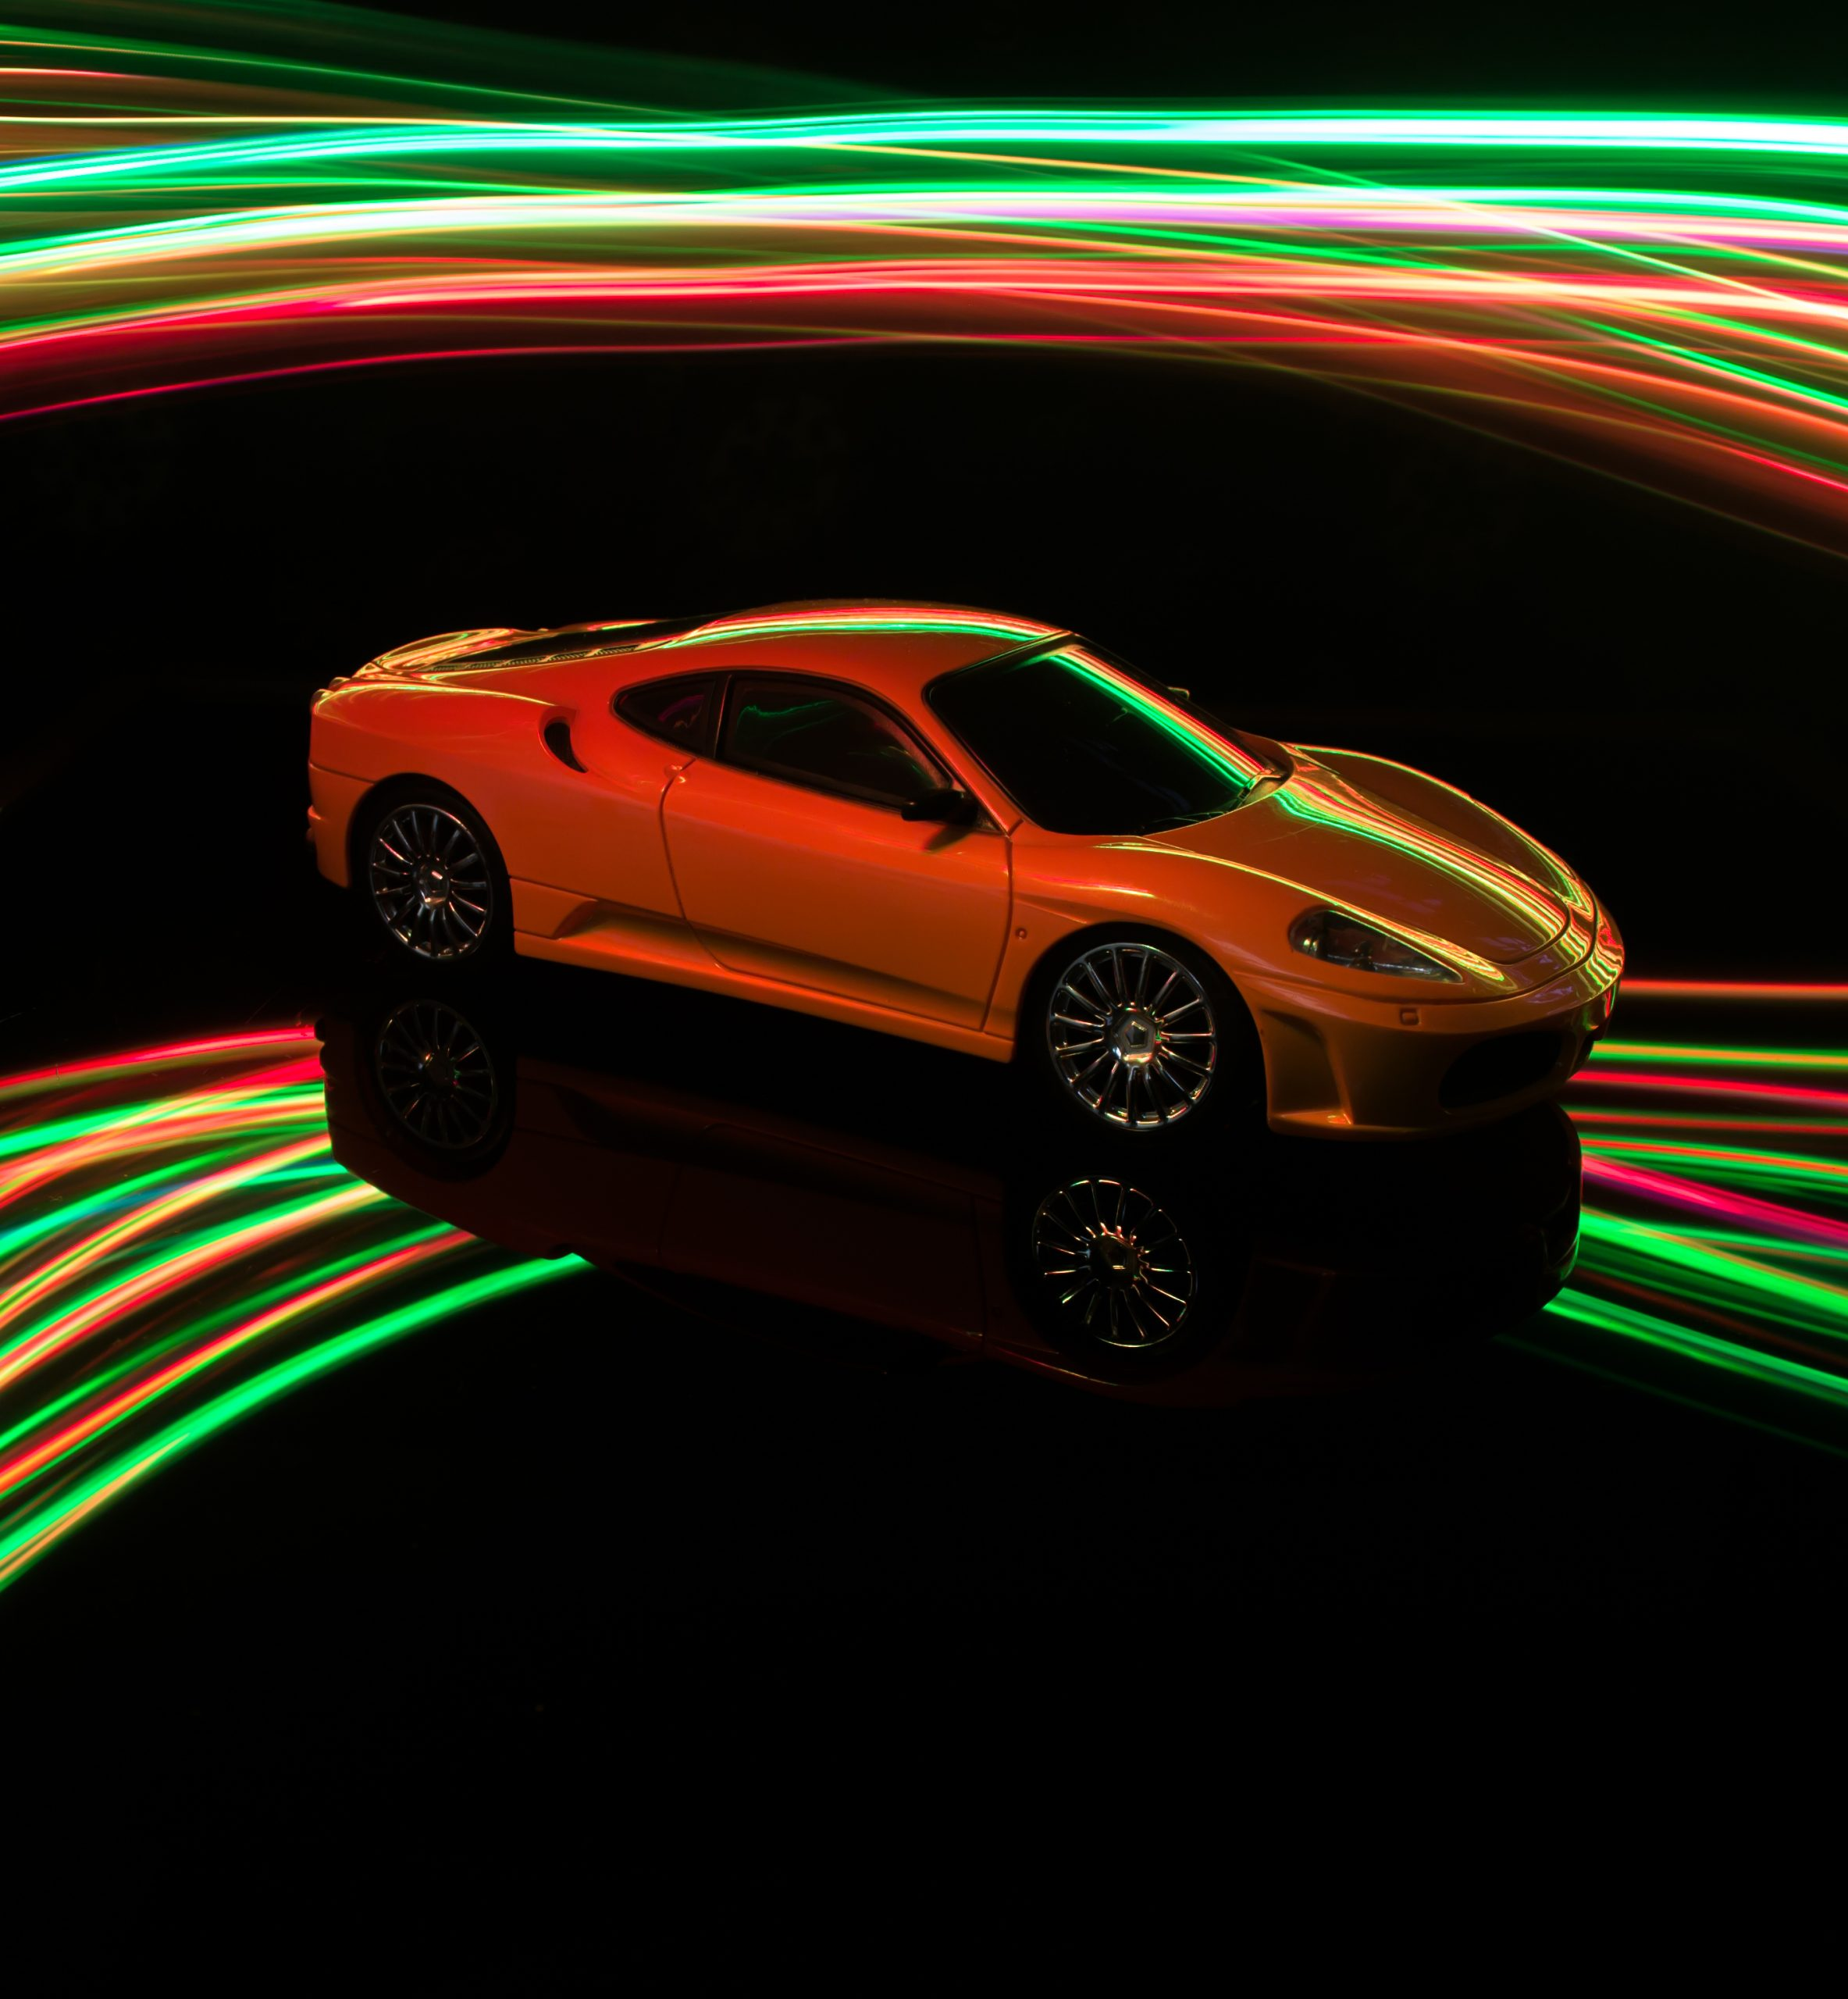 Toy car with lighting in background